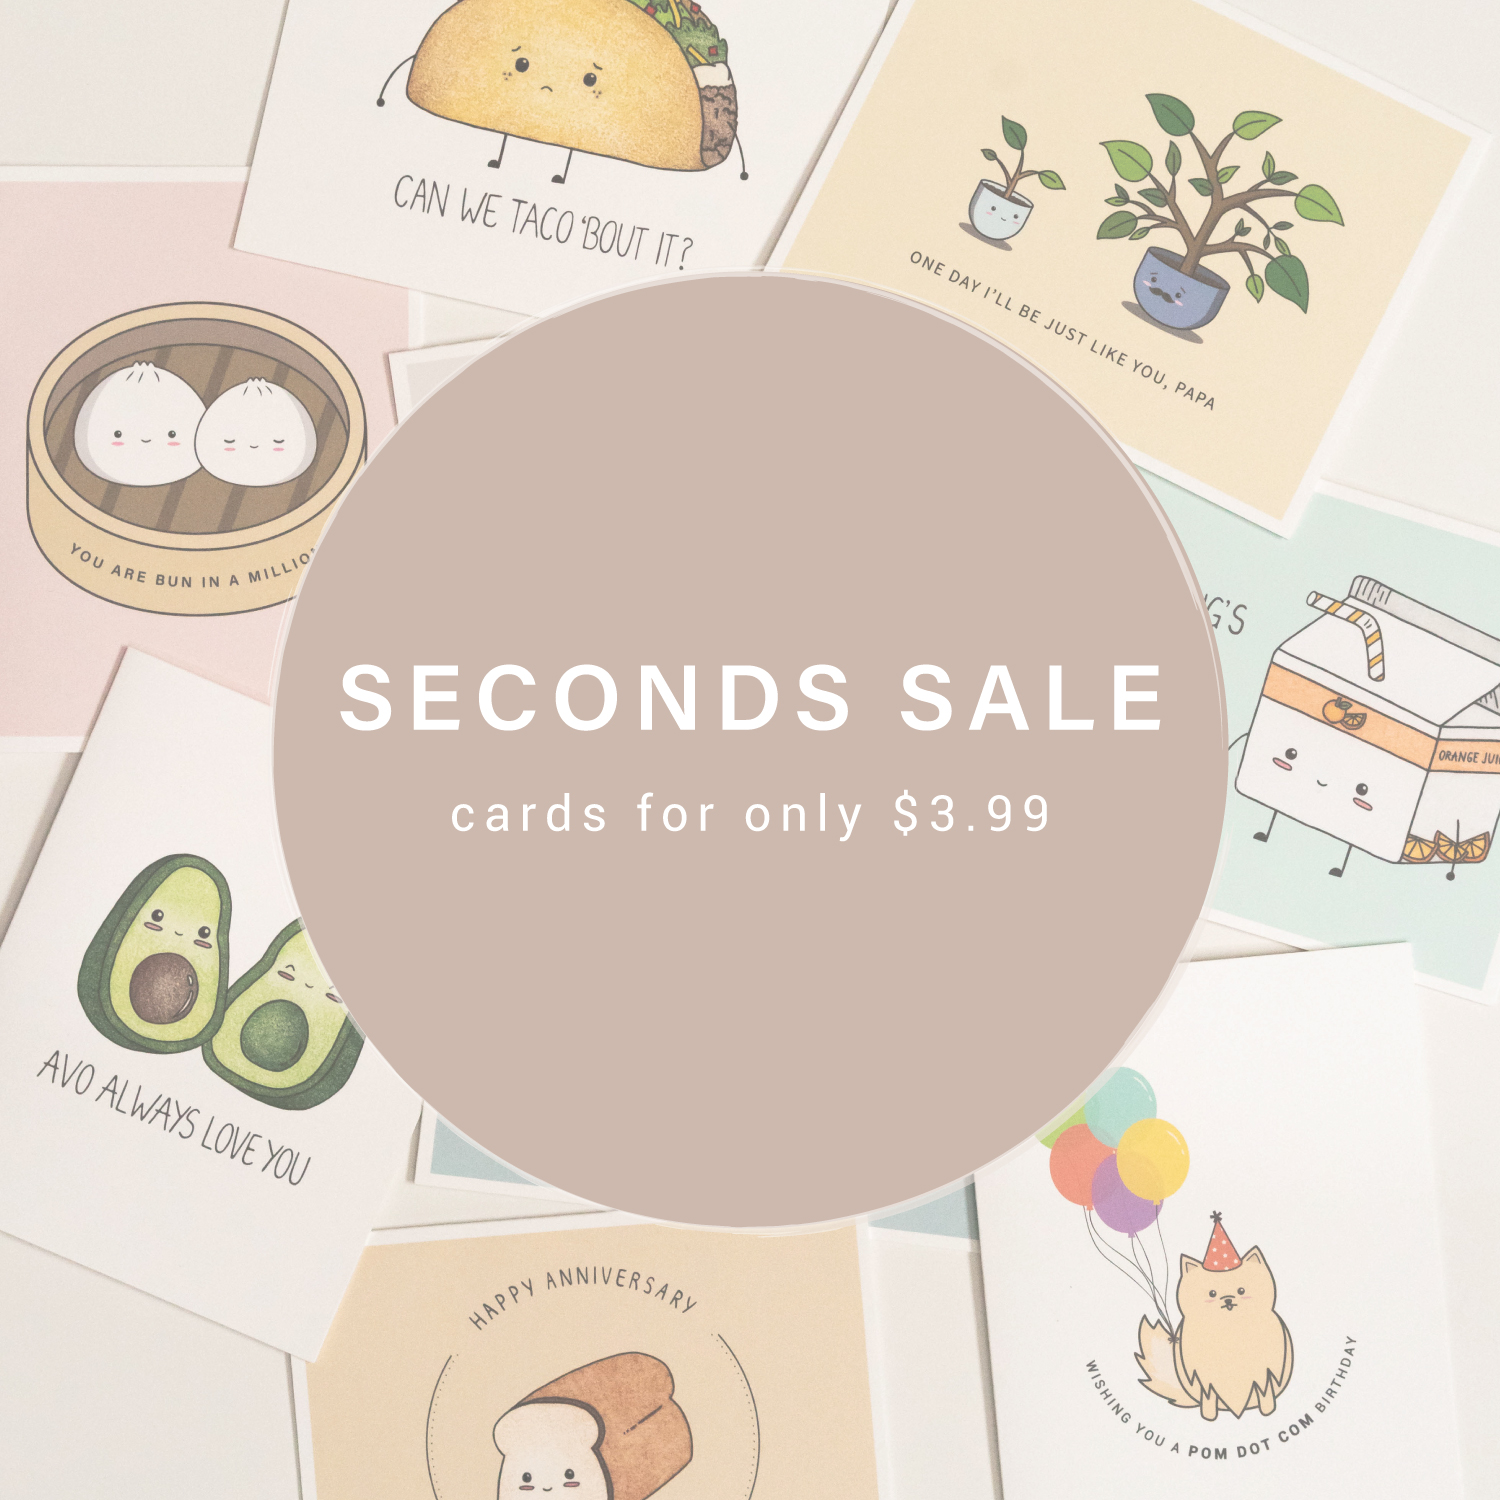 Seconds Sale: Cute and Playful Greeting Cards For Only $3.99 CAD